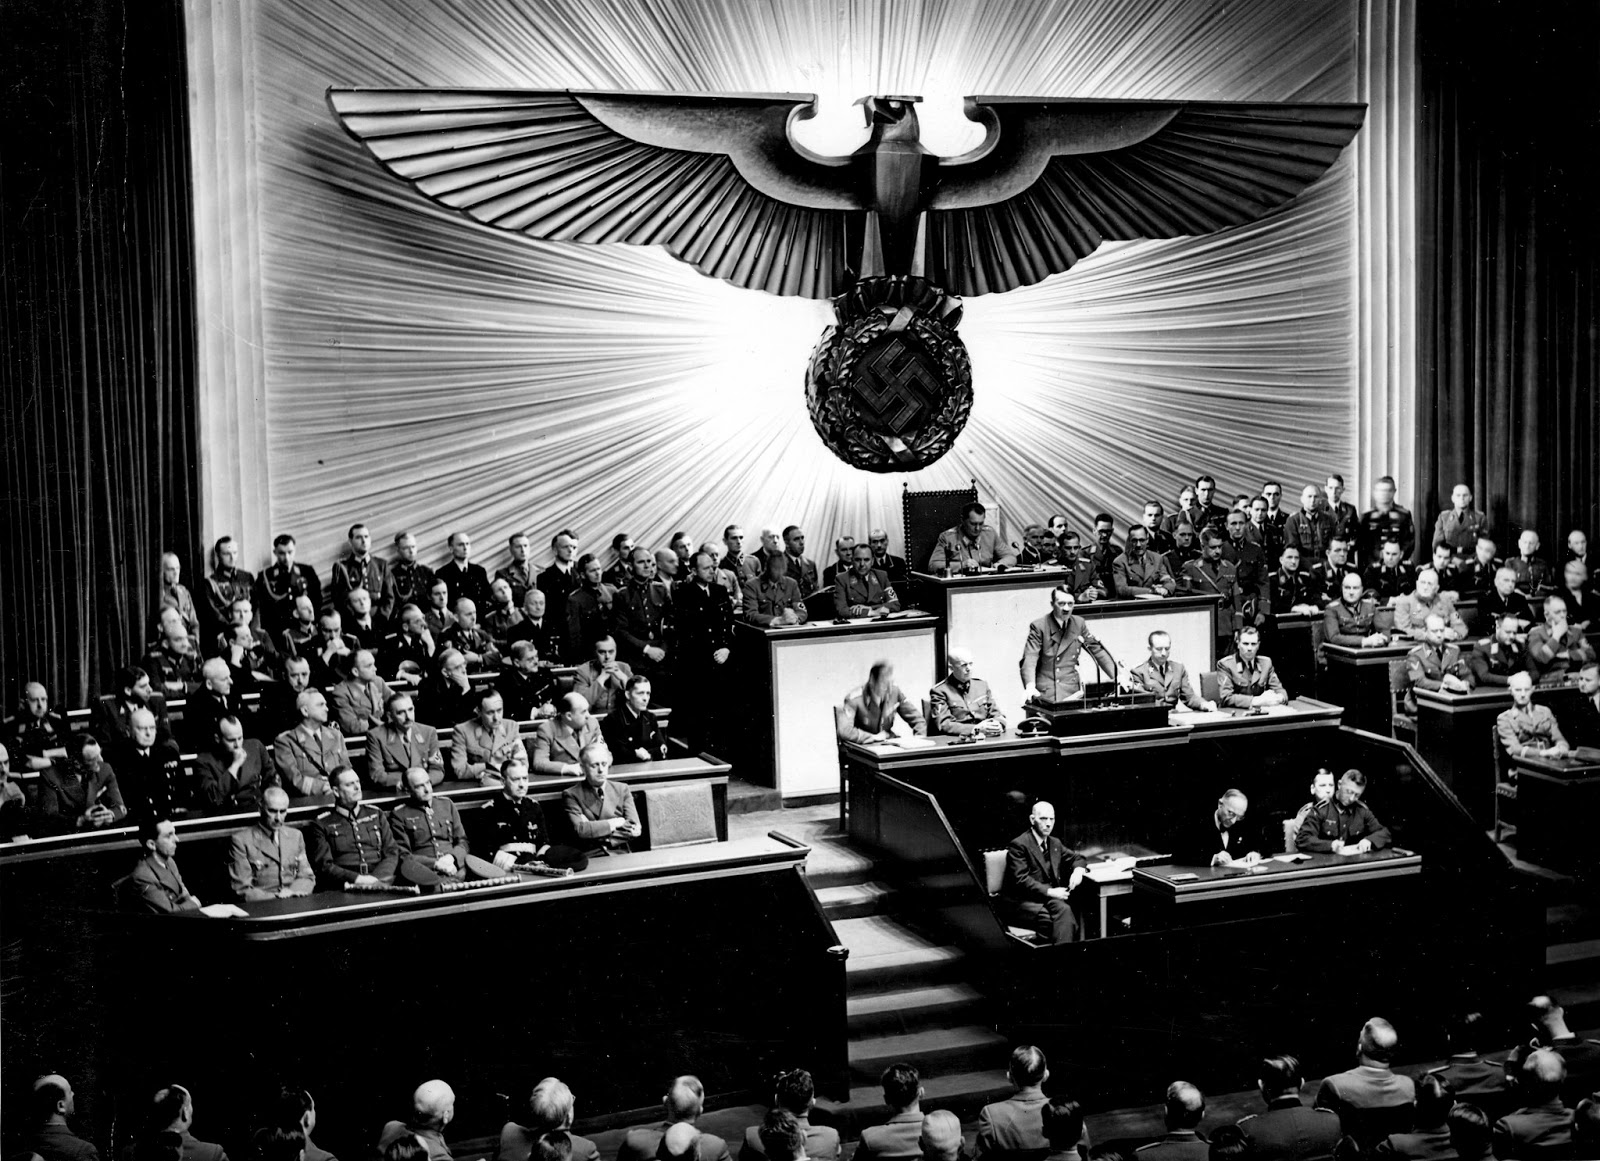 hitlers underestimation of the allies Why hitler's grand plan during the second world war collapsed two key factors undermined germany's campaign: us involvement boosted the allies' arms-producing capabilities, while sheer soviet manpower led to catastrophic defeat in russia.